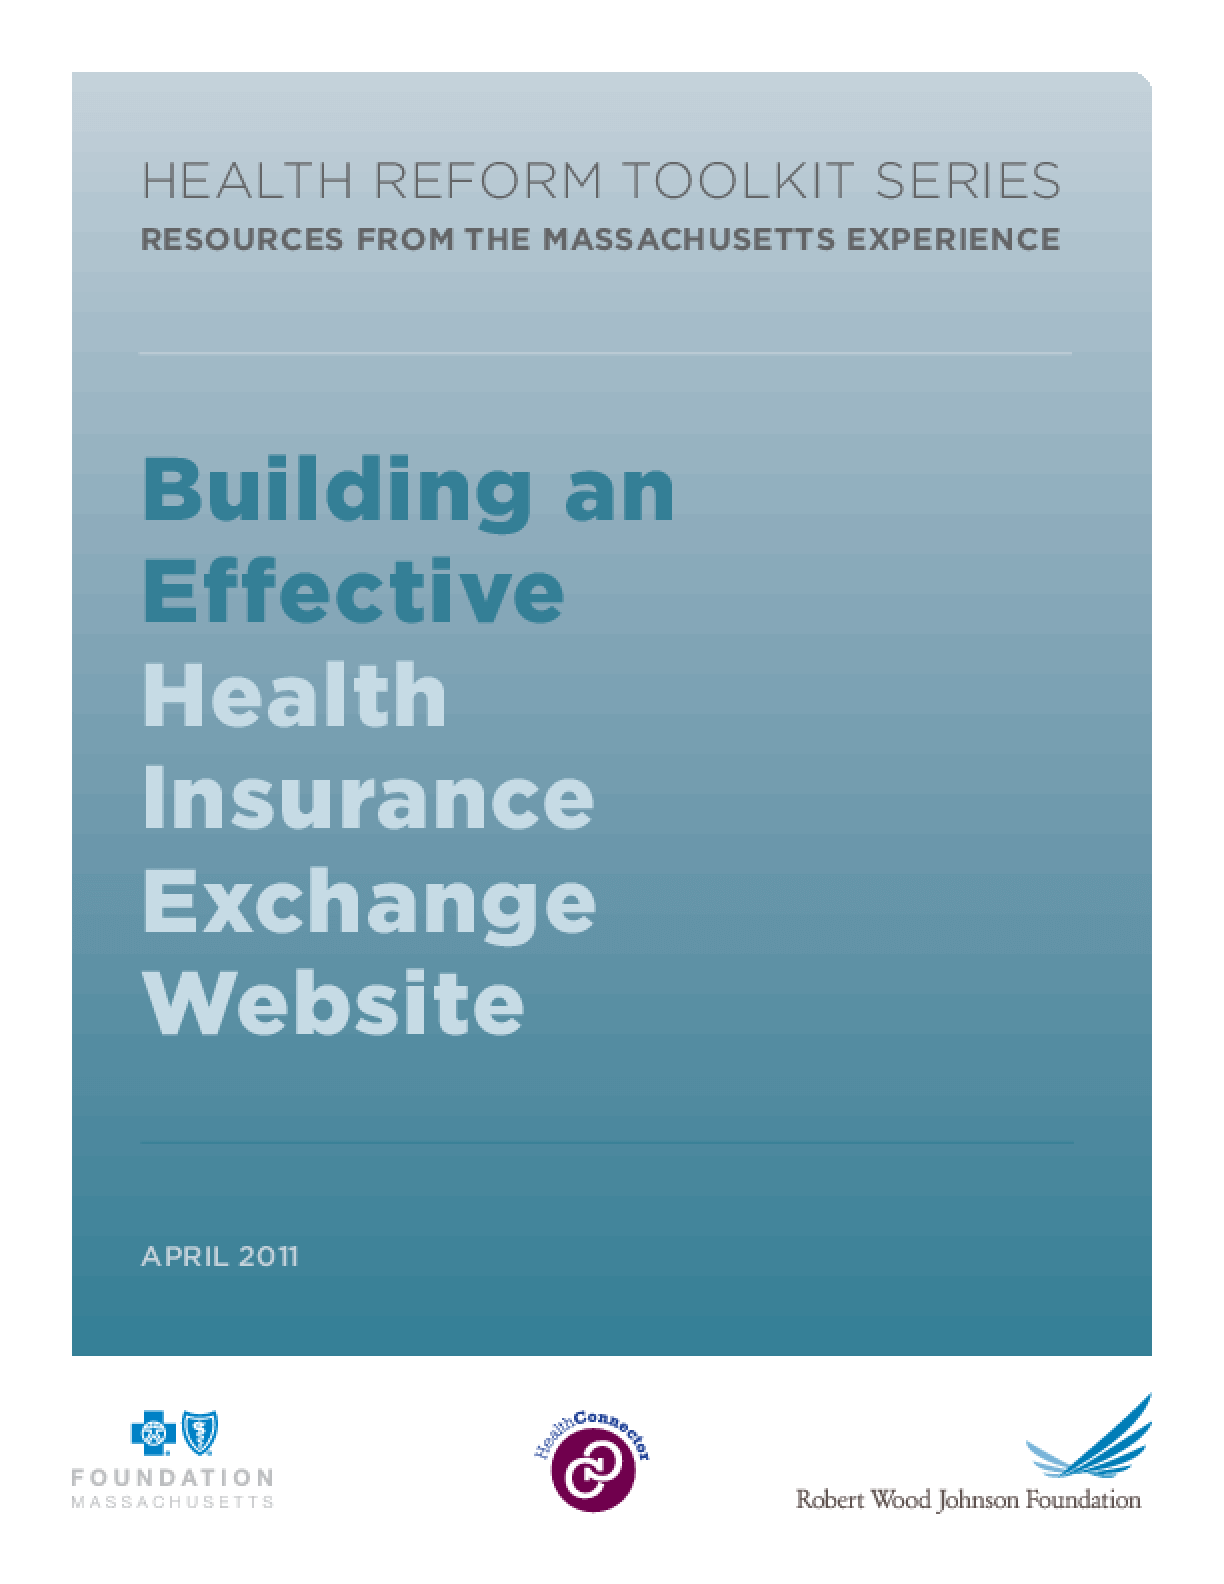 Building an Effective Health Insurance Exchange Website